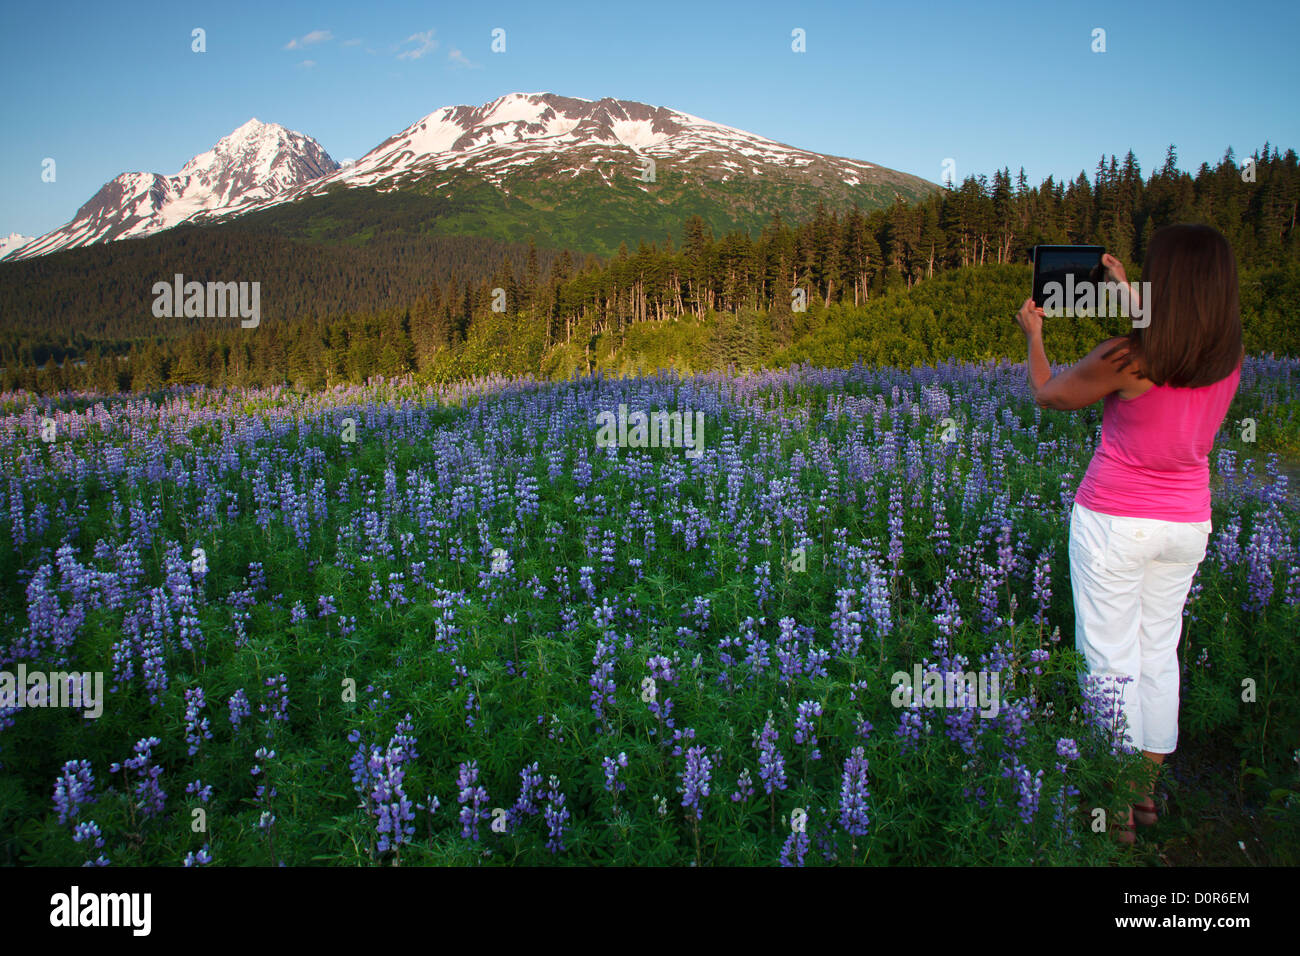 Visitor taking a photo with an ipad, Chugach National Forest, Alaska. (model released) - Stock Image